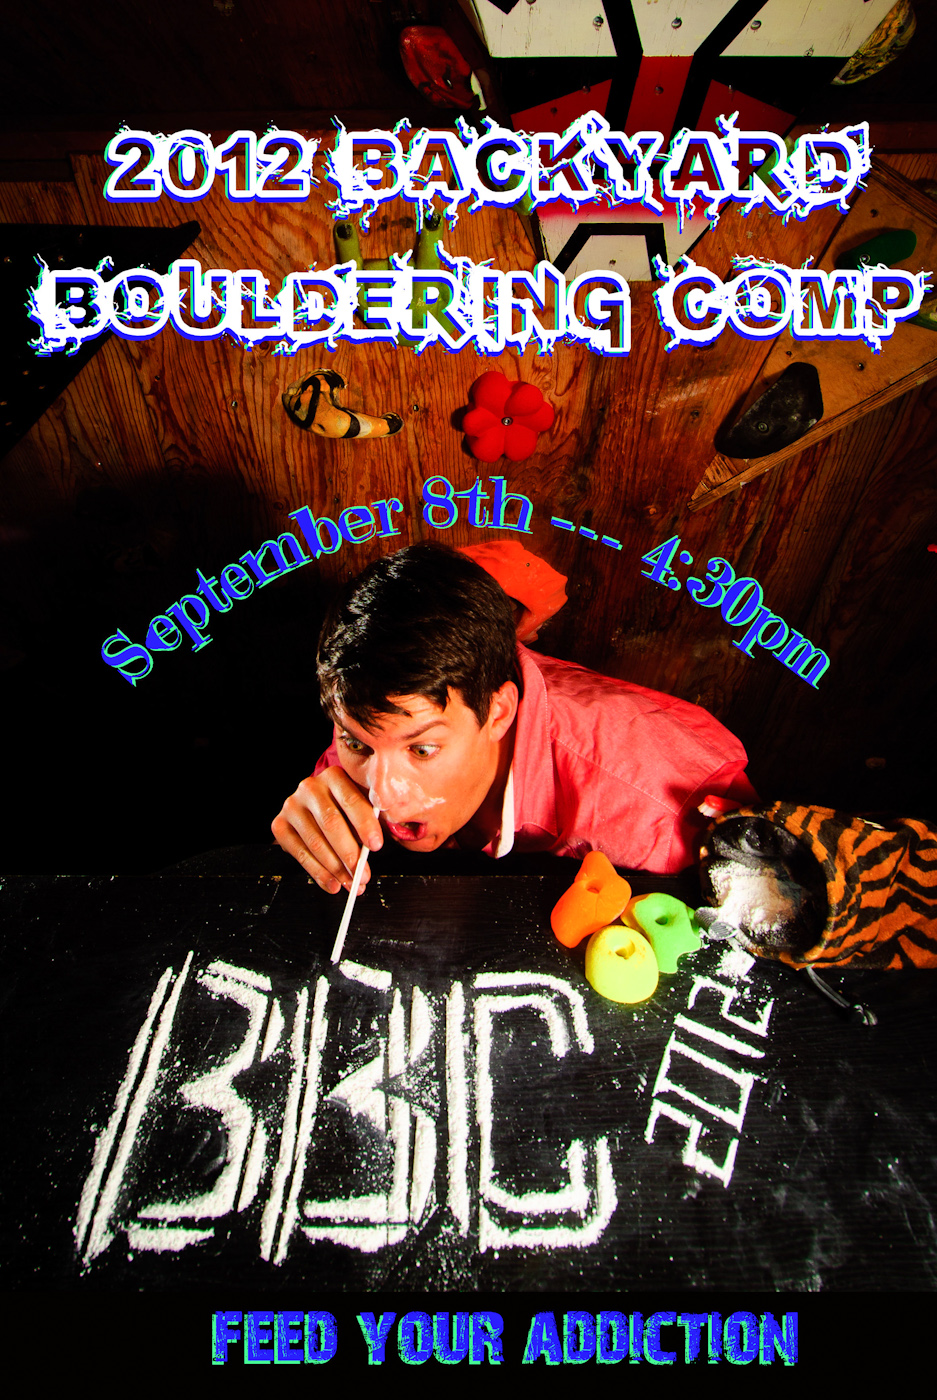 2012 Backyard Bouldering Competition Poster